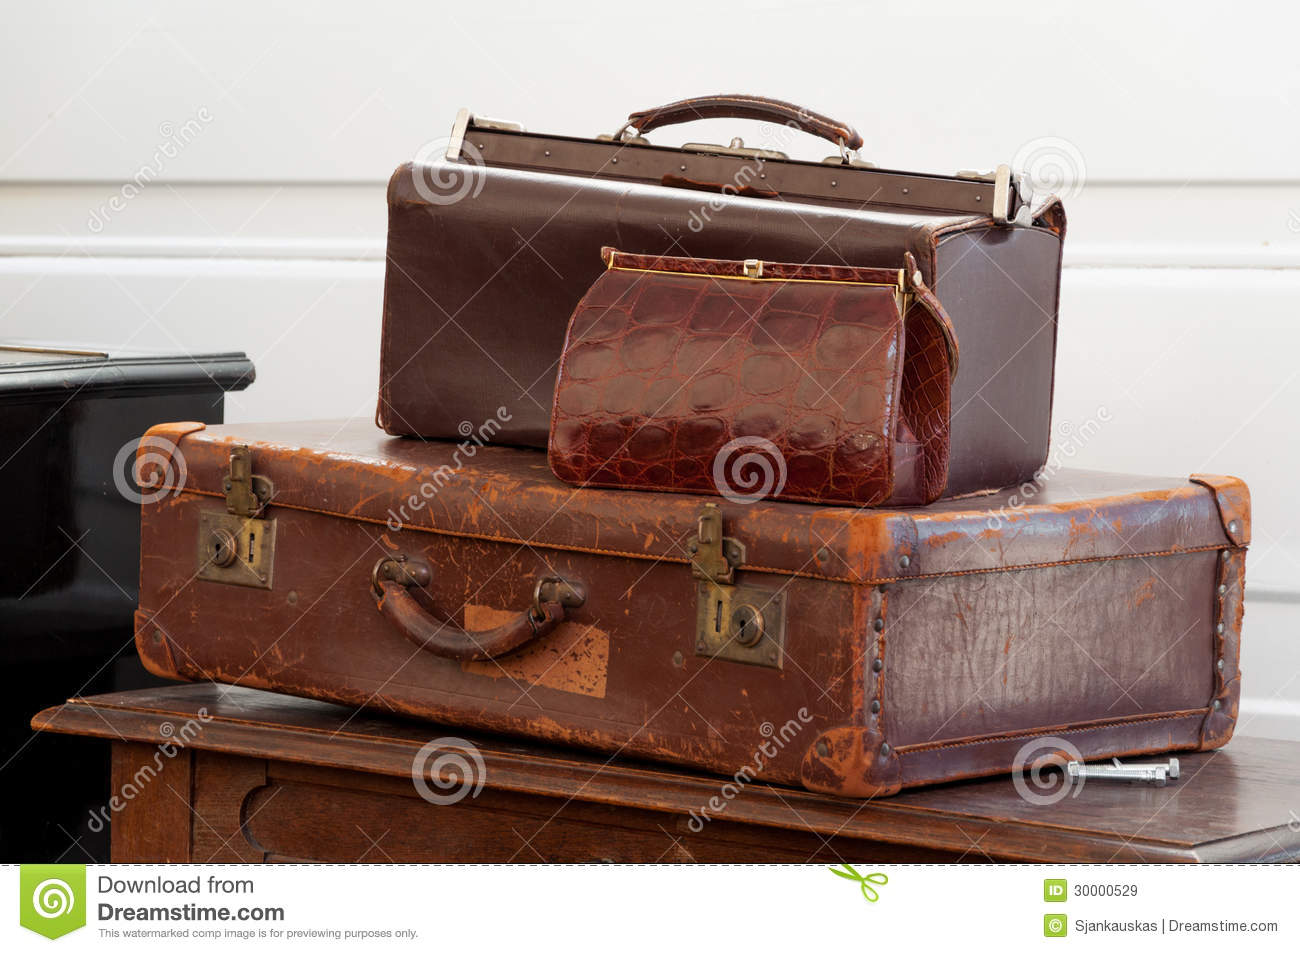 Vintage Bags Royalty Free Stock Images - Image: 30000529